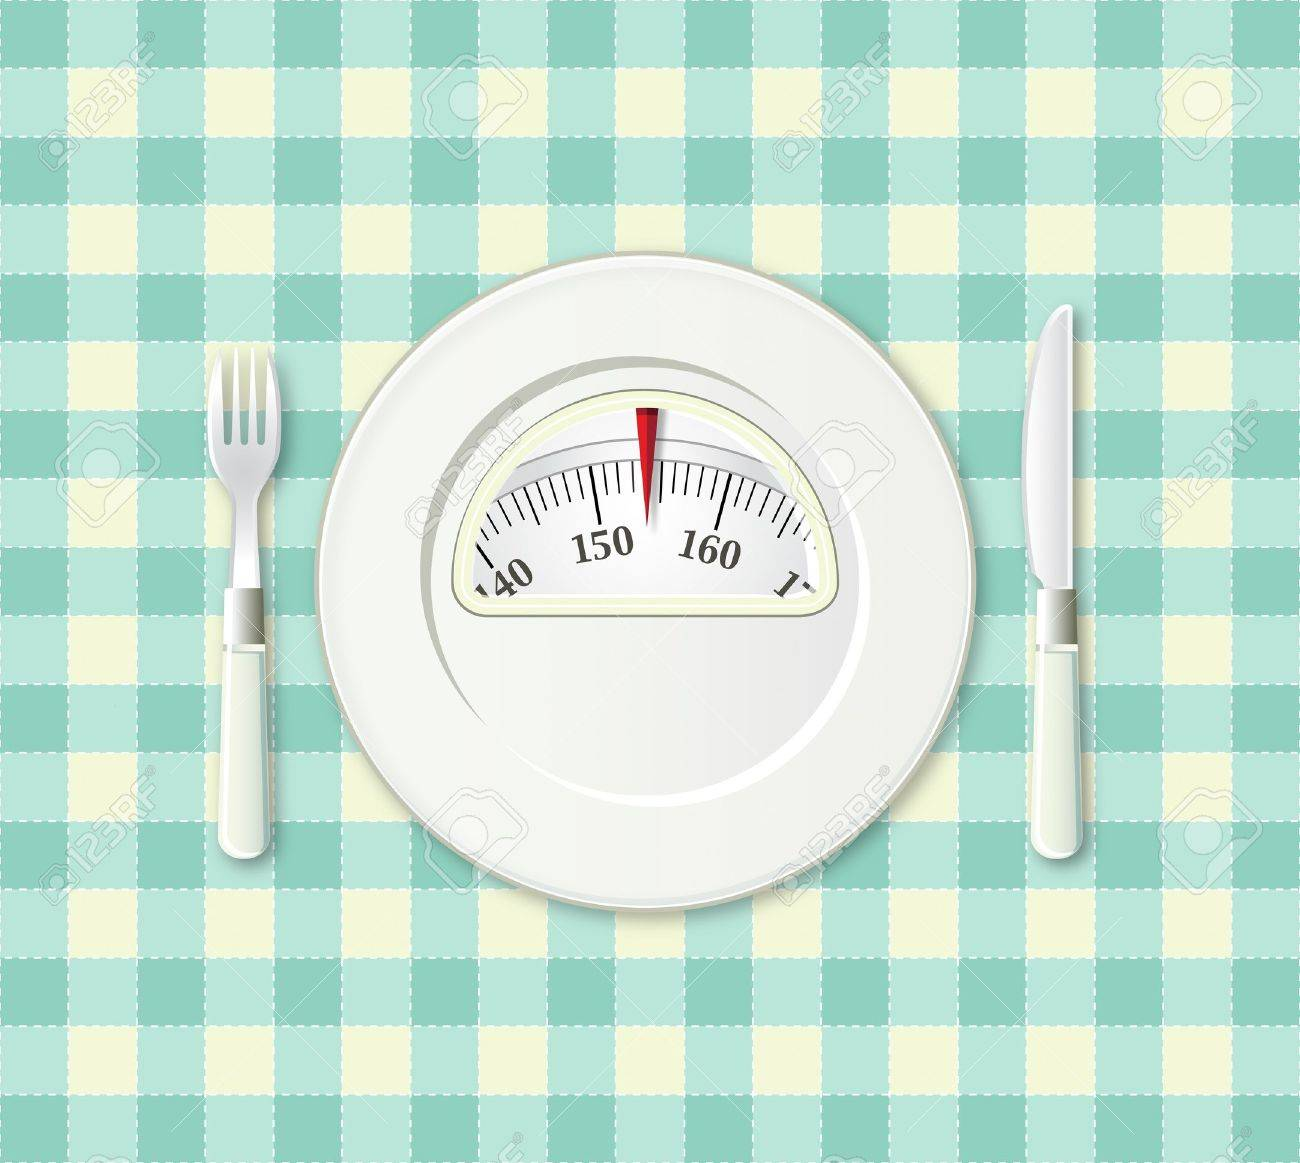 Plate with fork and knife on a plaid with a weight balance scale integrated in the plate Stock Photo - 12983091